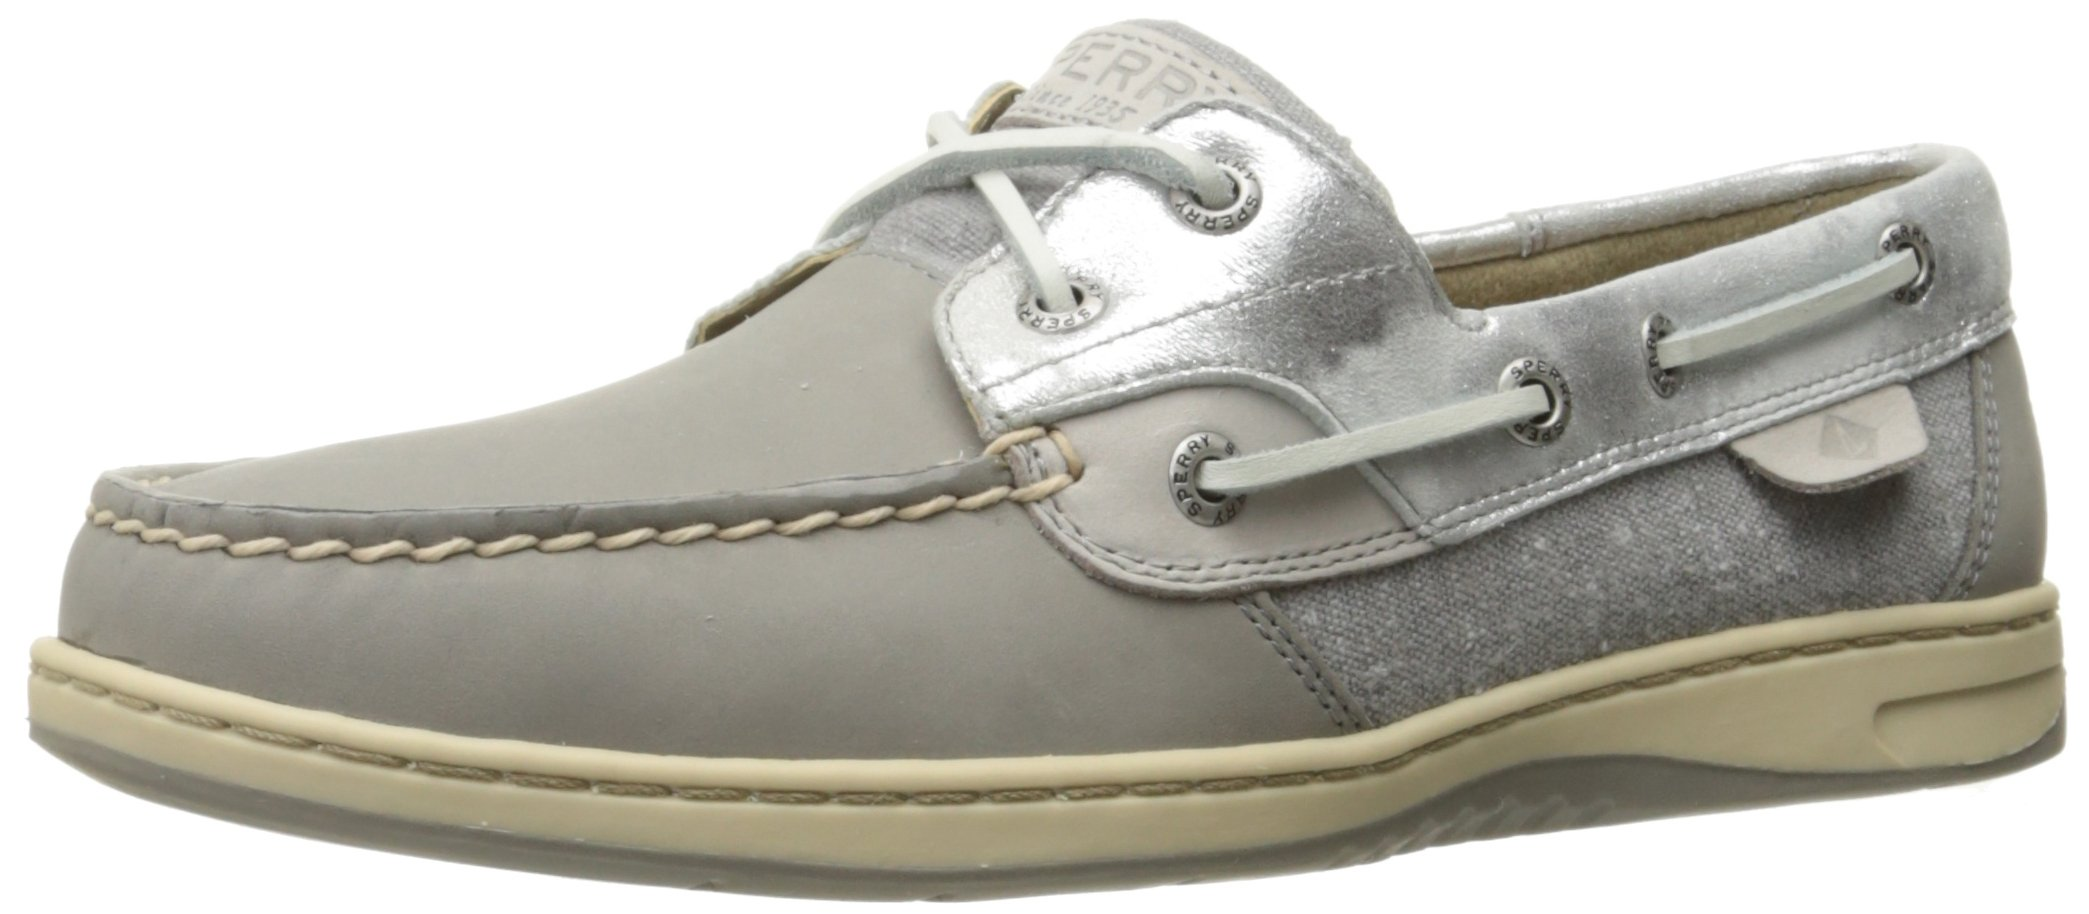 Sperry Top-Sider Women's Bluefish 2-Eye Boat Shoe, Grey/Silver Metallic, 6 M US